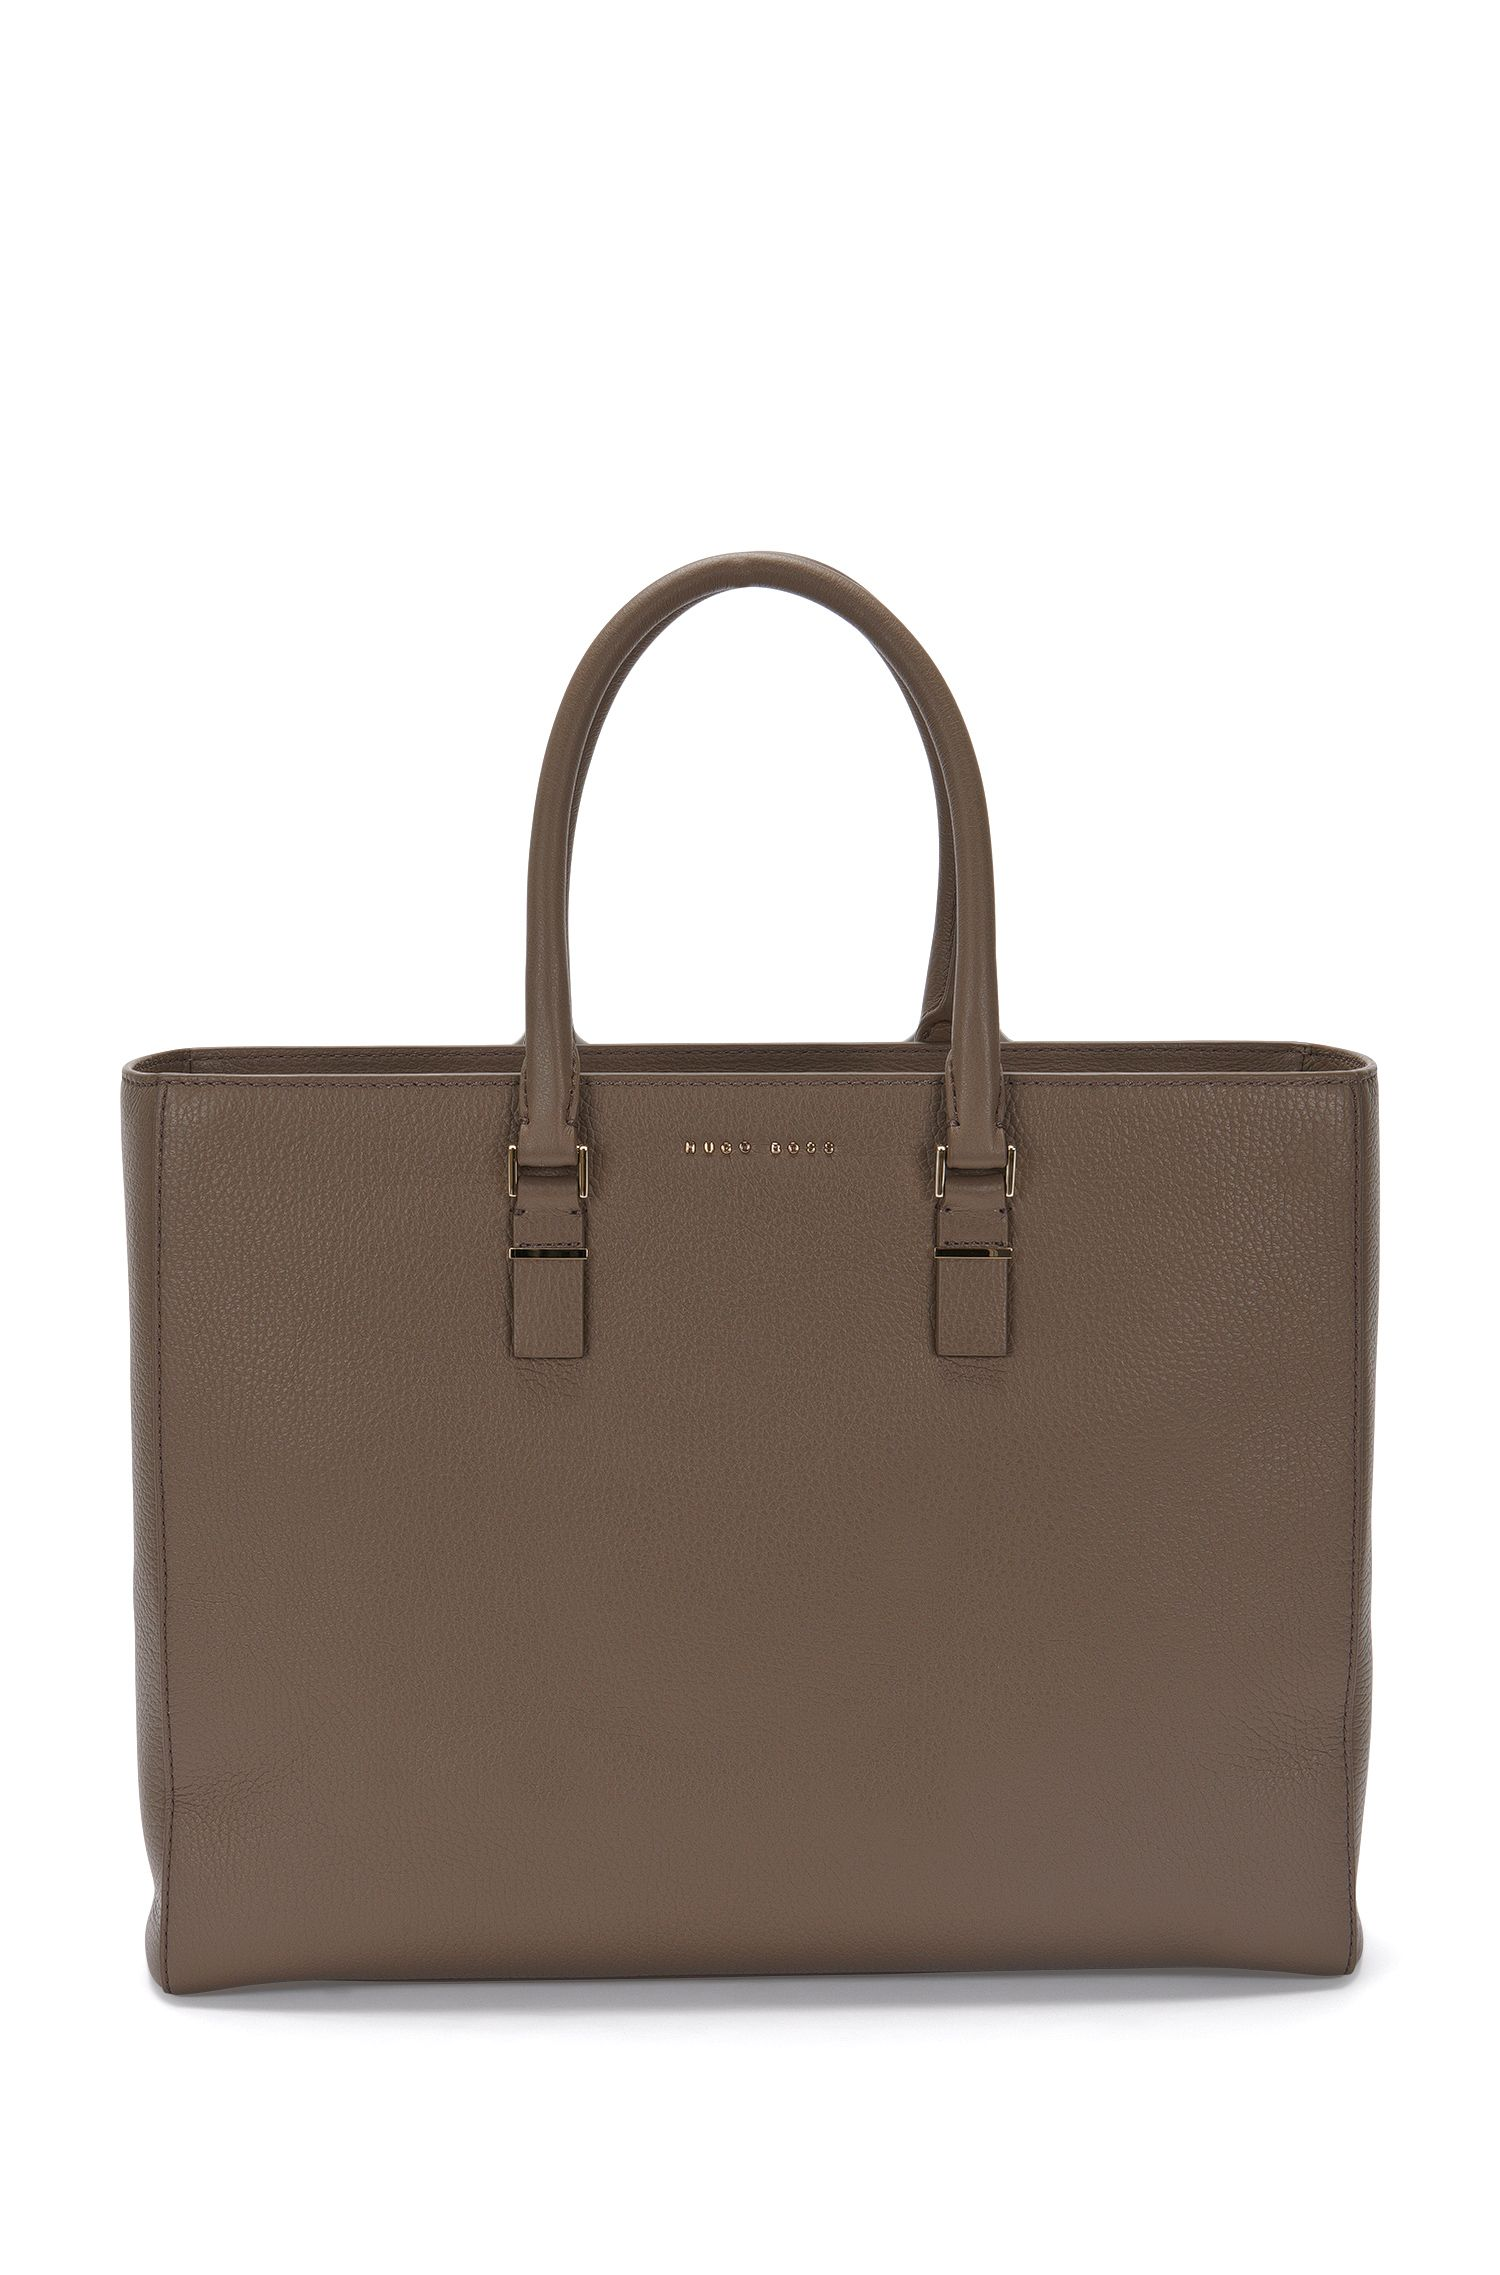 BOSS Luxury Staple work bag in rich Italian leather